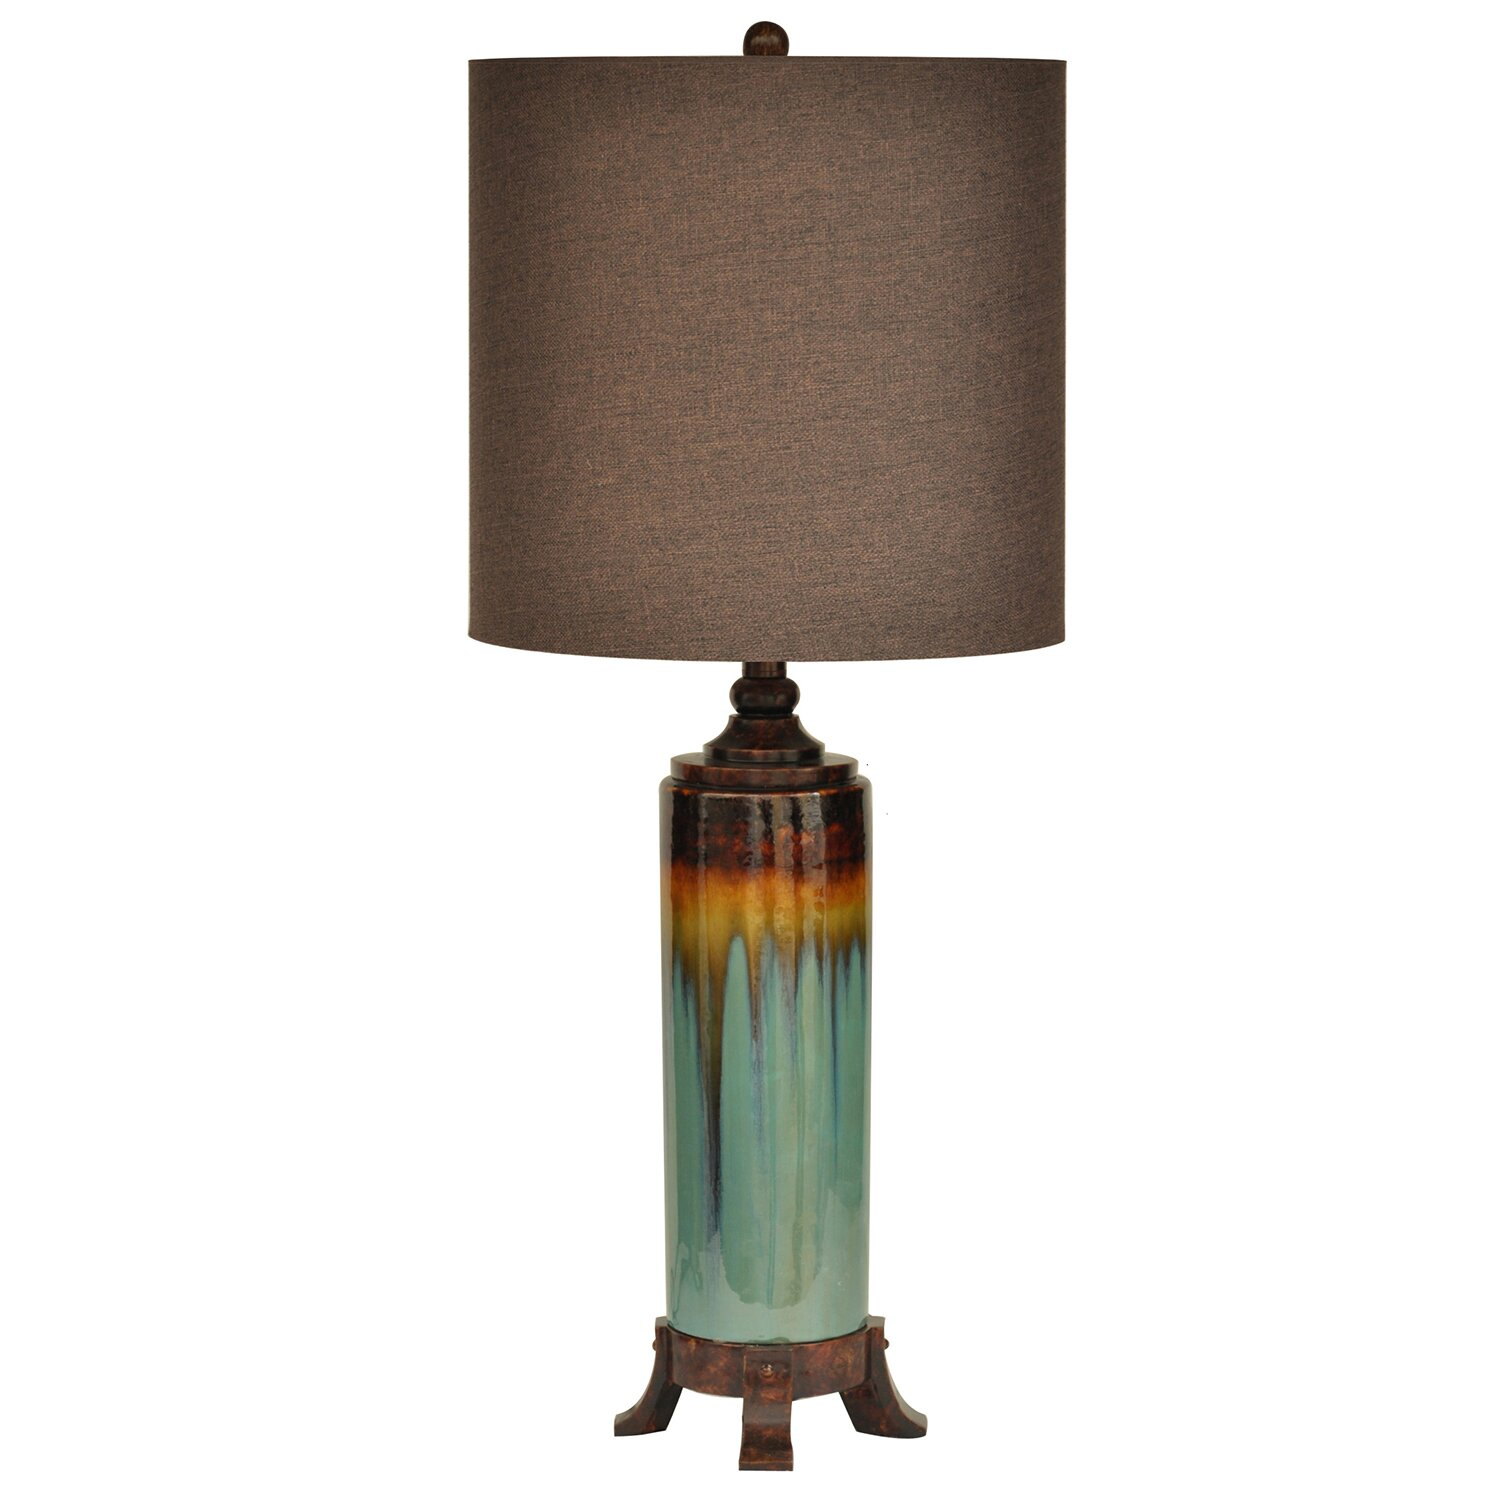 "Country Lamps Lighting: Crestview Wine Country 32.5"" Table Lamp & Reviews"